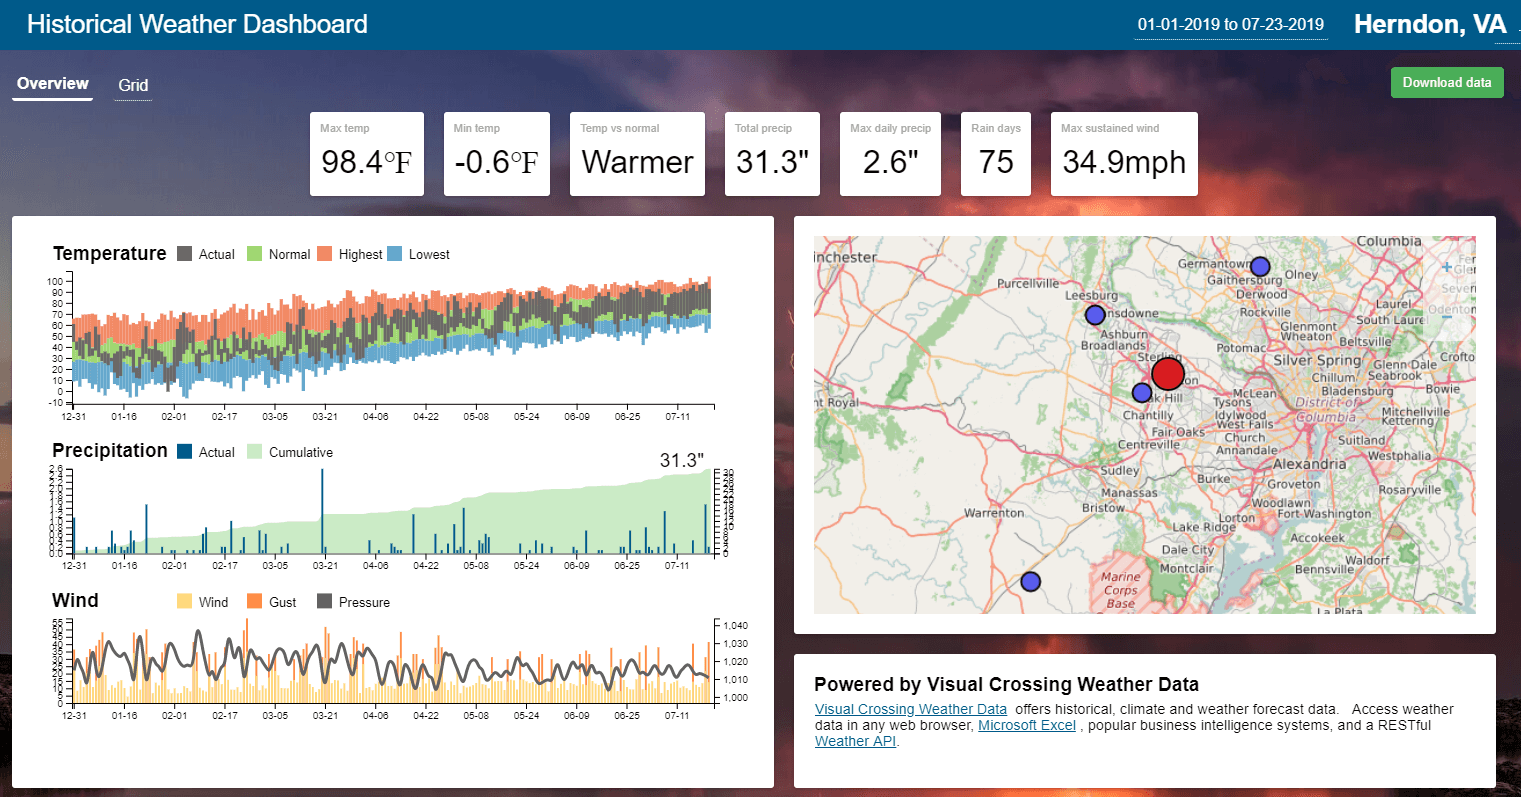 Initial Historial Weather Dashboard